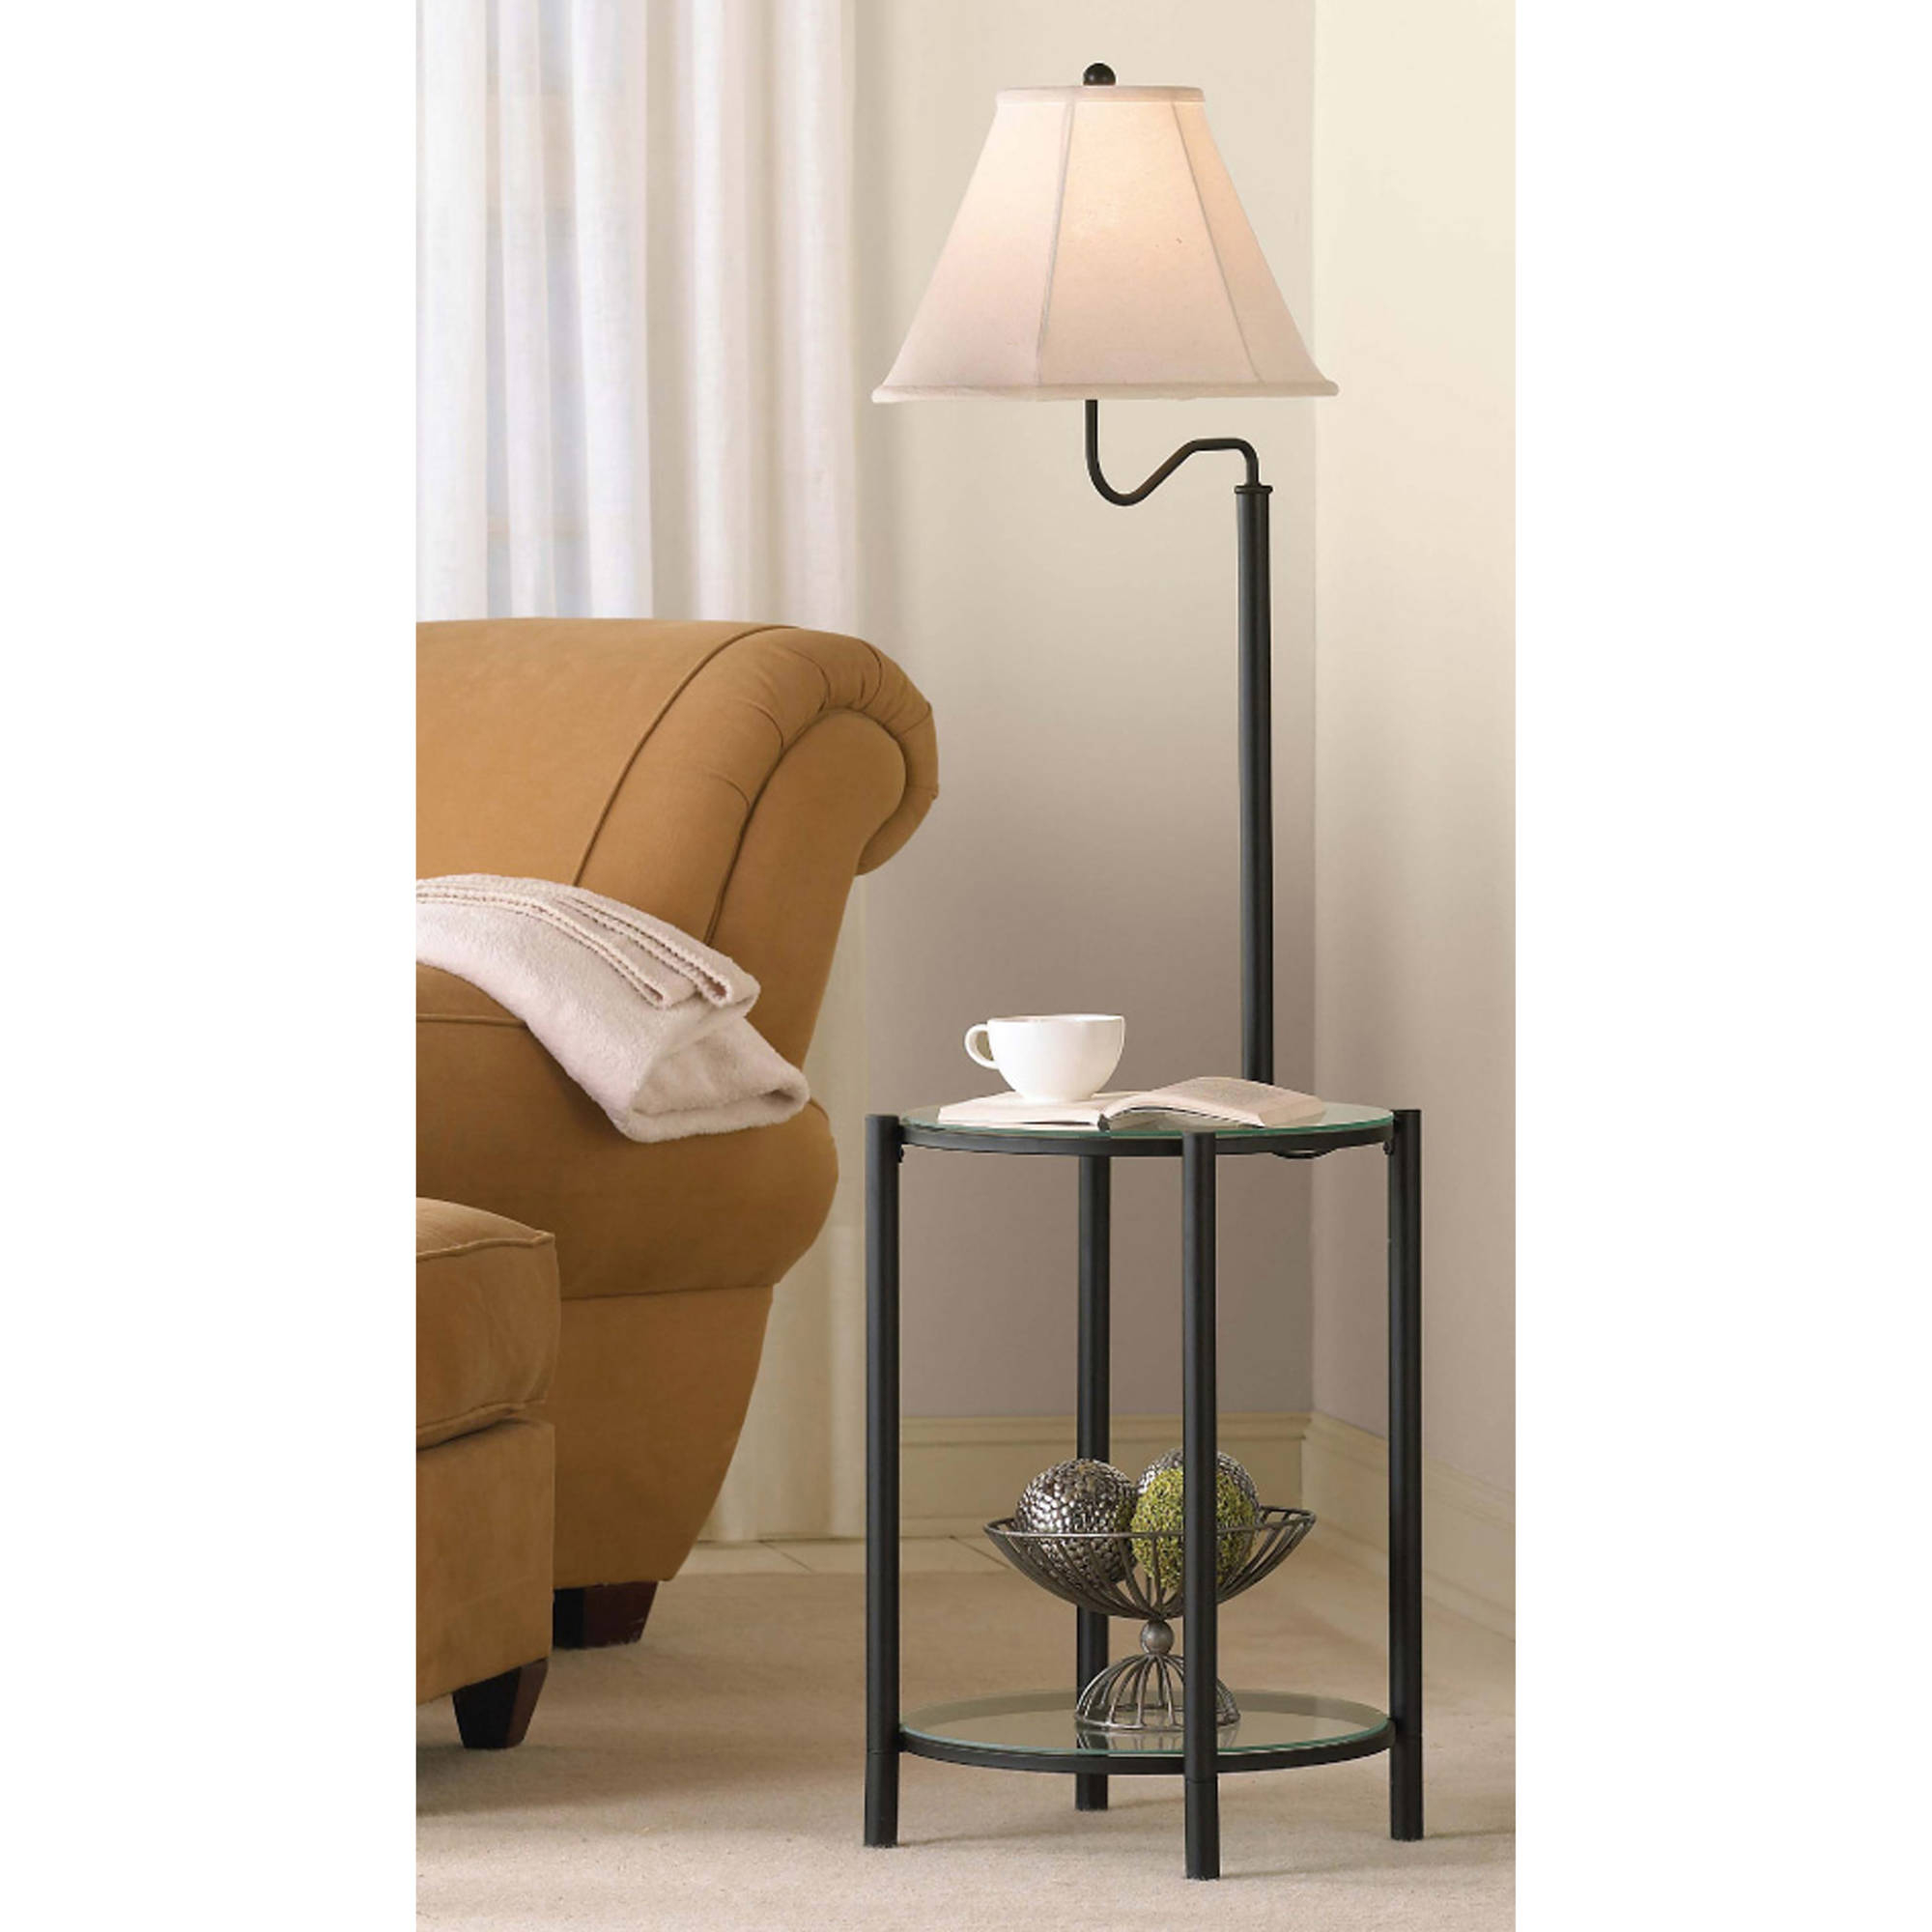 battery operated table lamps green lamp white tall for living room inside small accent round dining and chairs mirrored glass tables lighting black nautical bar furniture marble